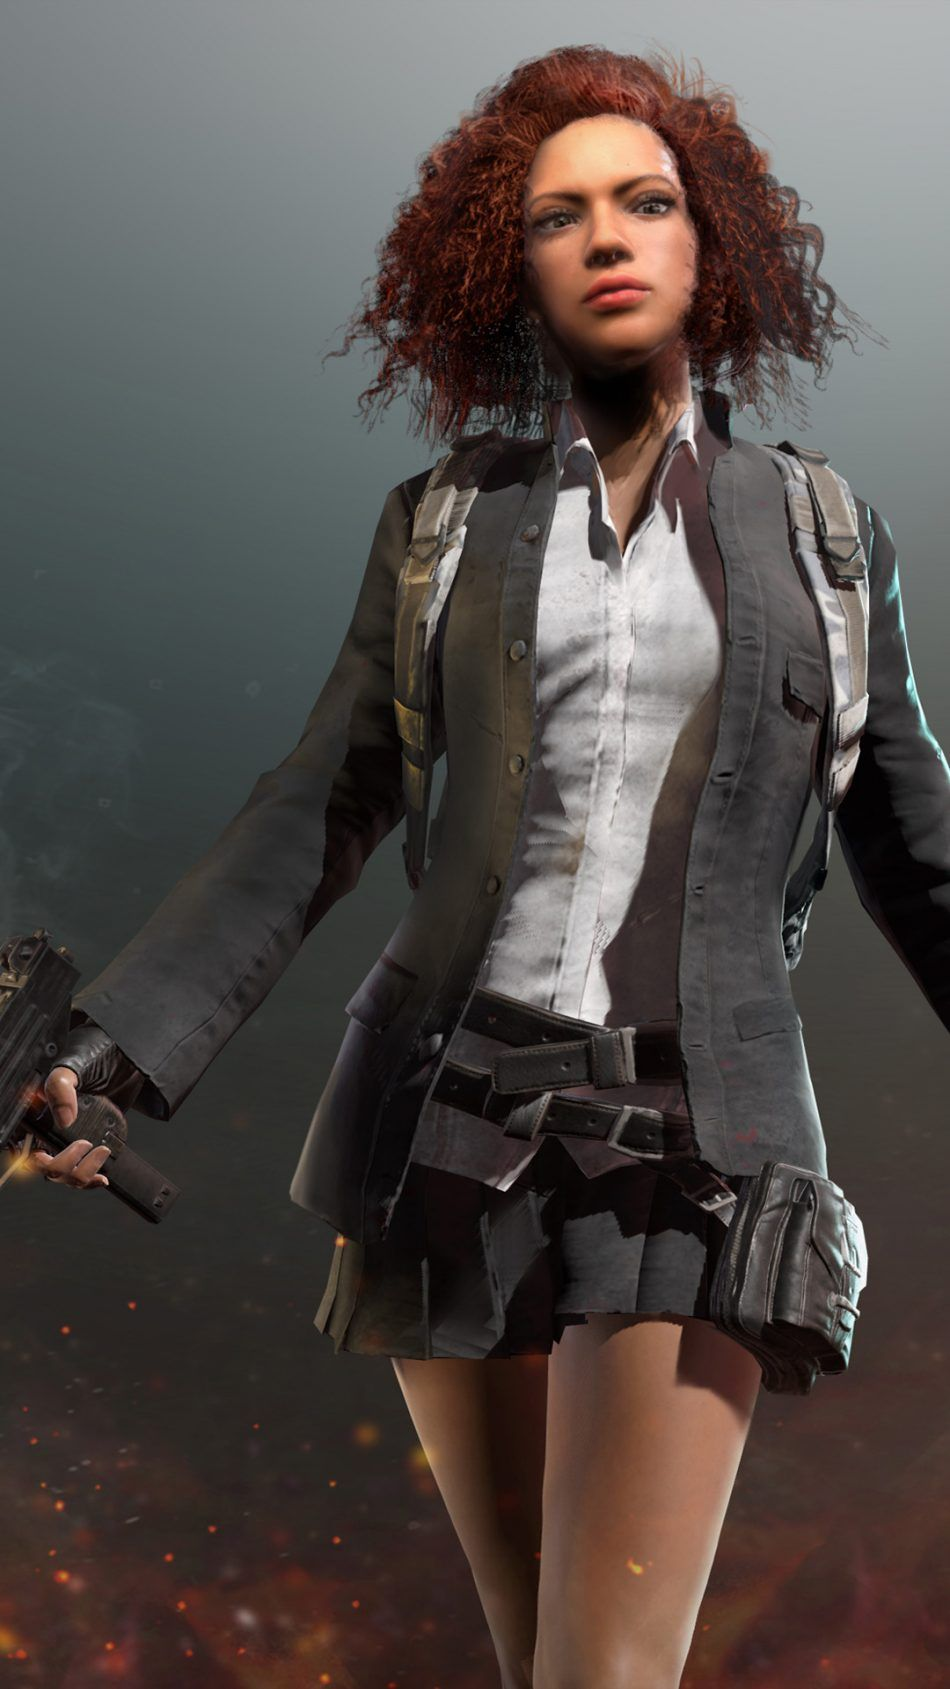 Download Pubg Game Character Ilene Pubg Gaming Wallpapers Mobile